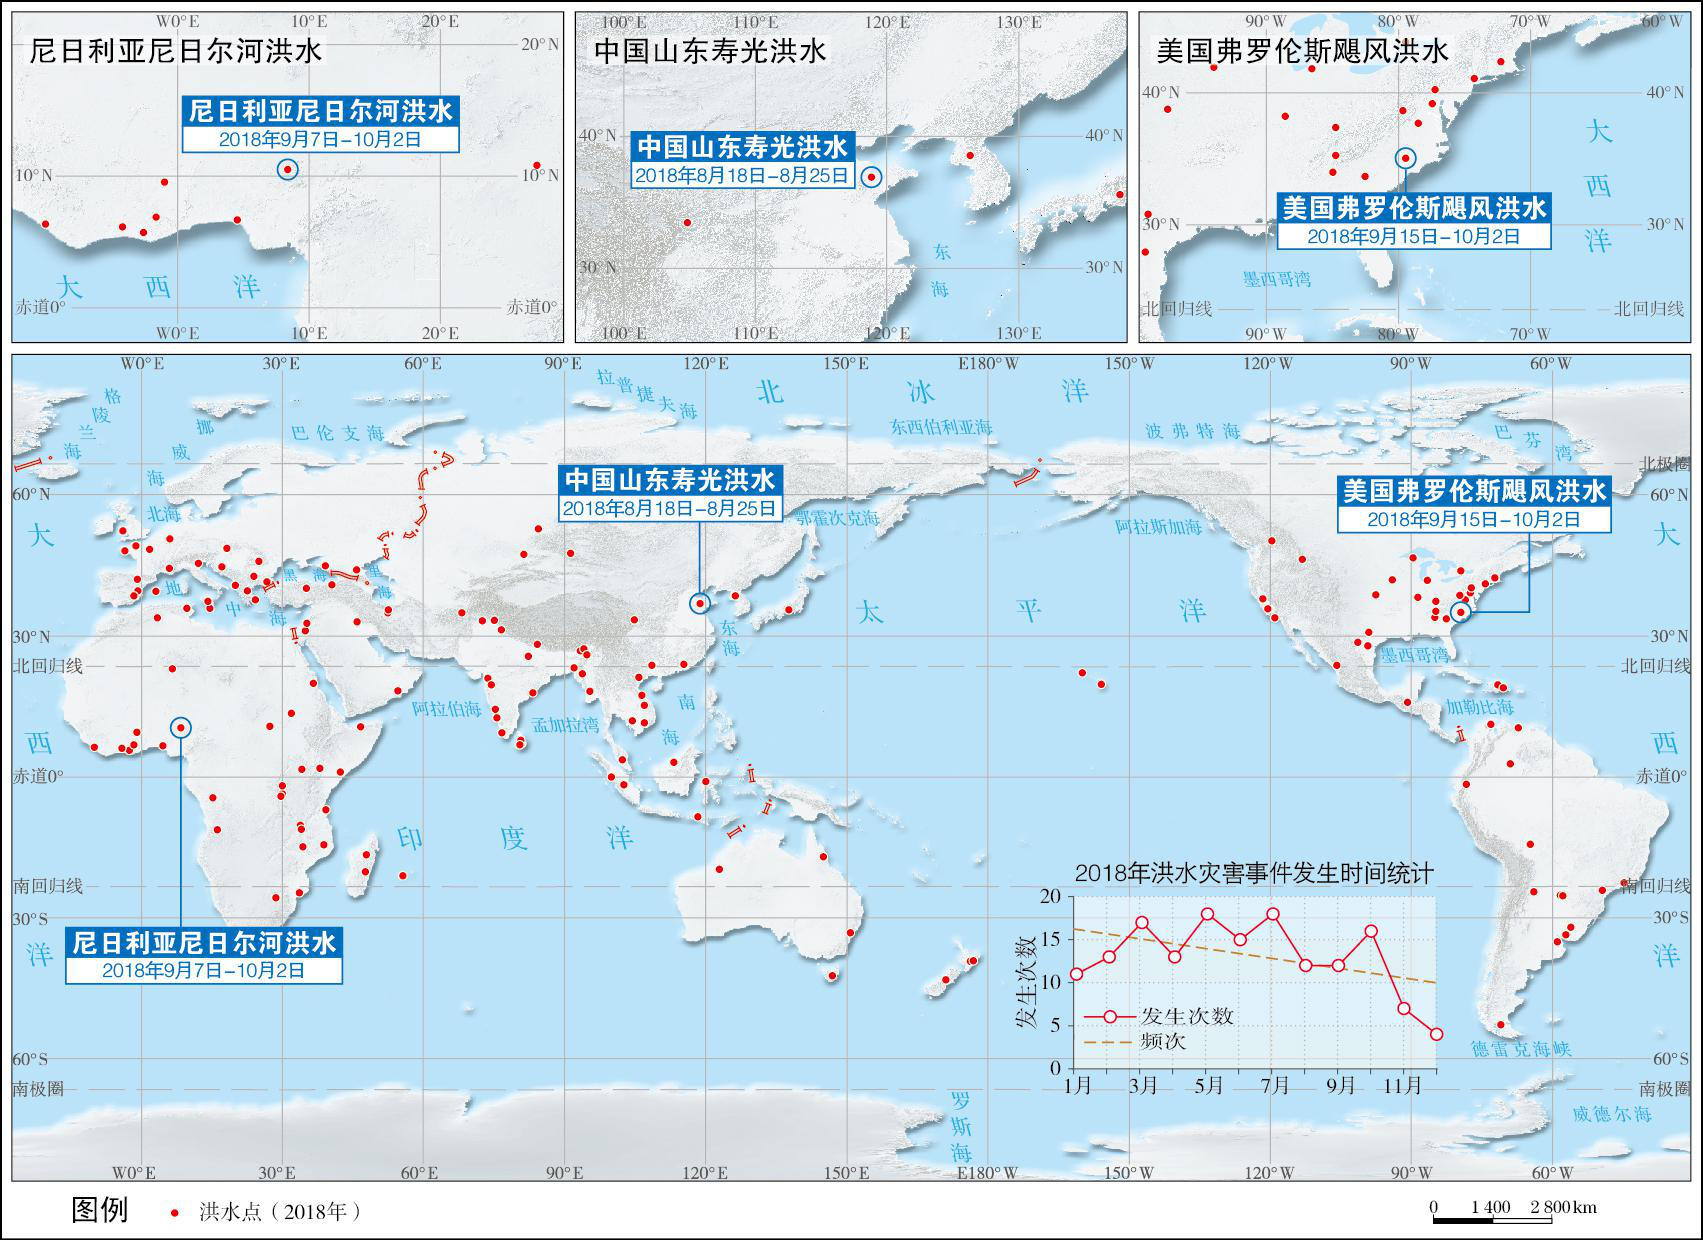 Typical case dataset of major global flood disasters (2018.01-2018.12)